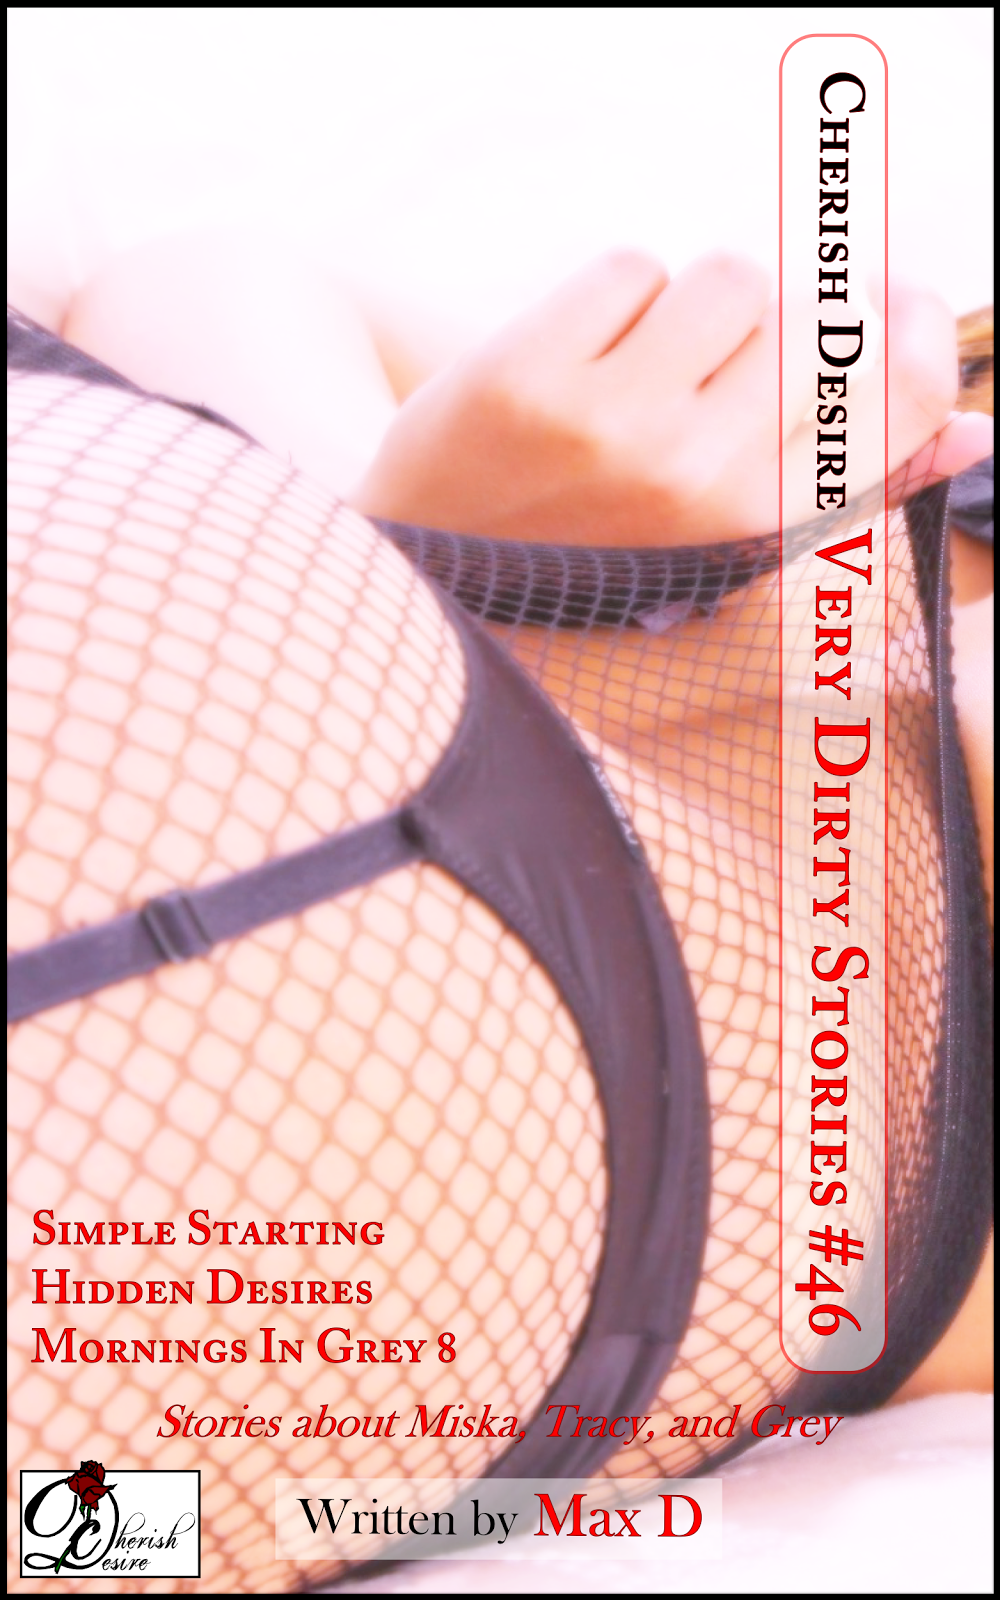 Cherish Desire: Very Dirty Stories #46, Max D, erotica